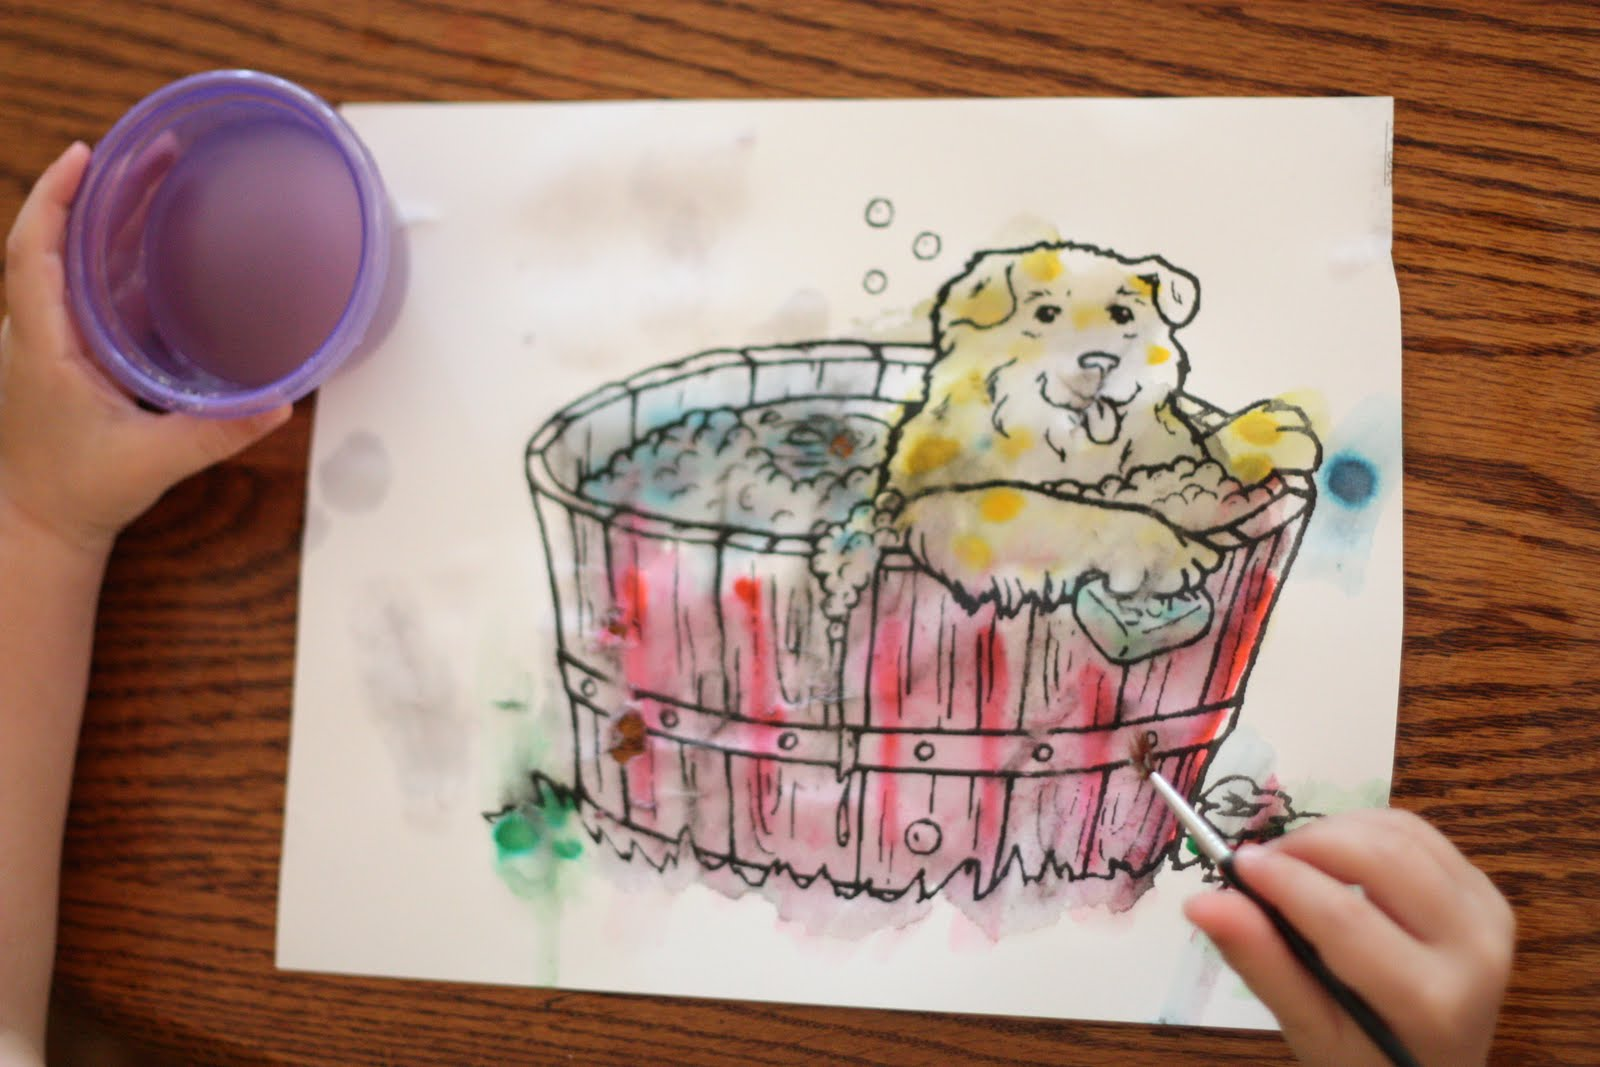 Paint With Water Books: How To Create Your Own - I Can Teach ...